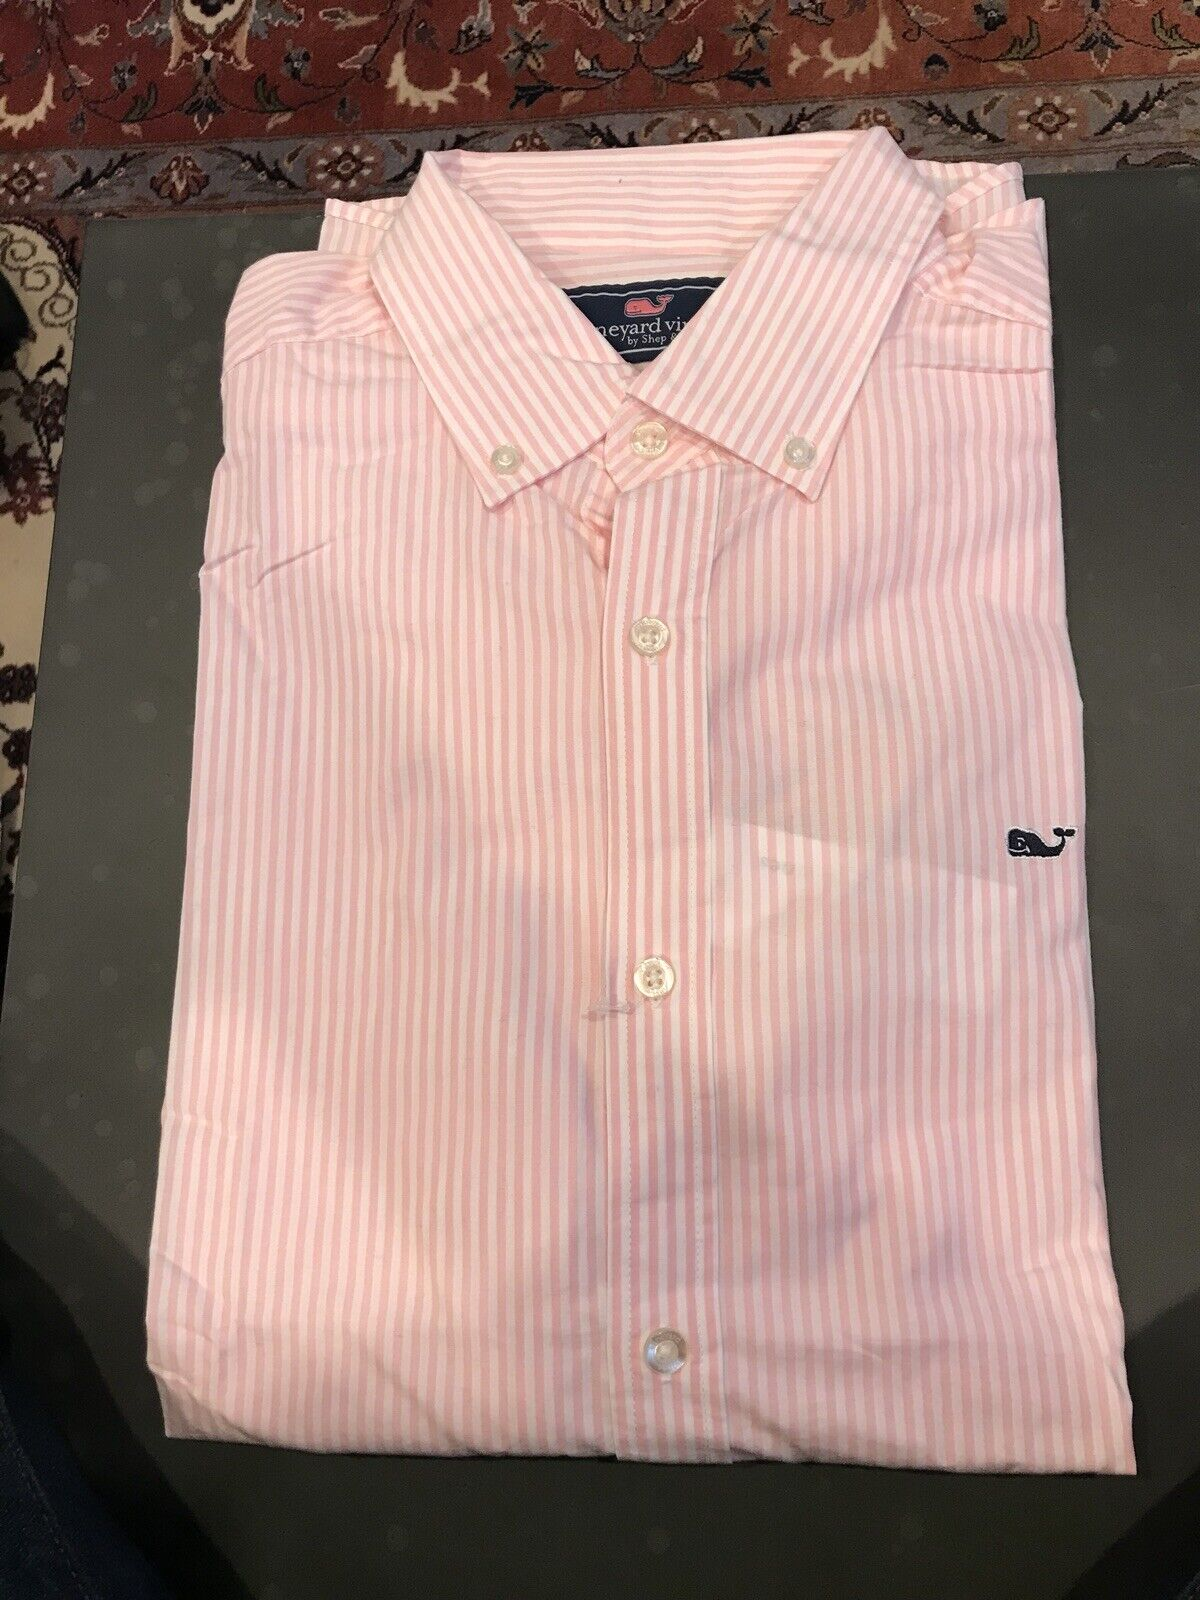 Vineyard Vines Pink And White Striped Button Down Shirt - Large